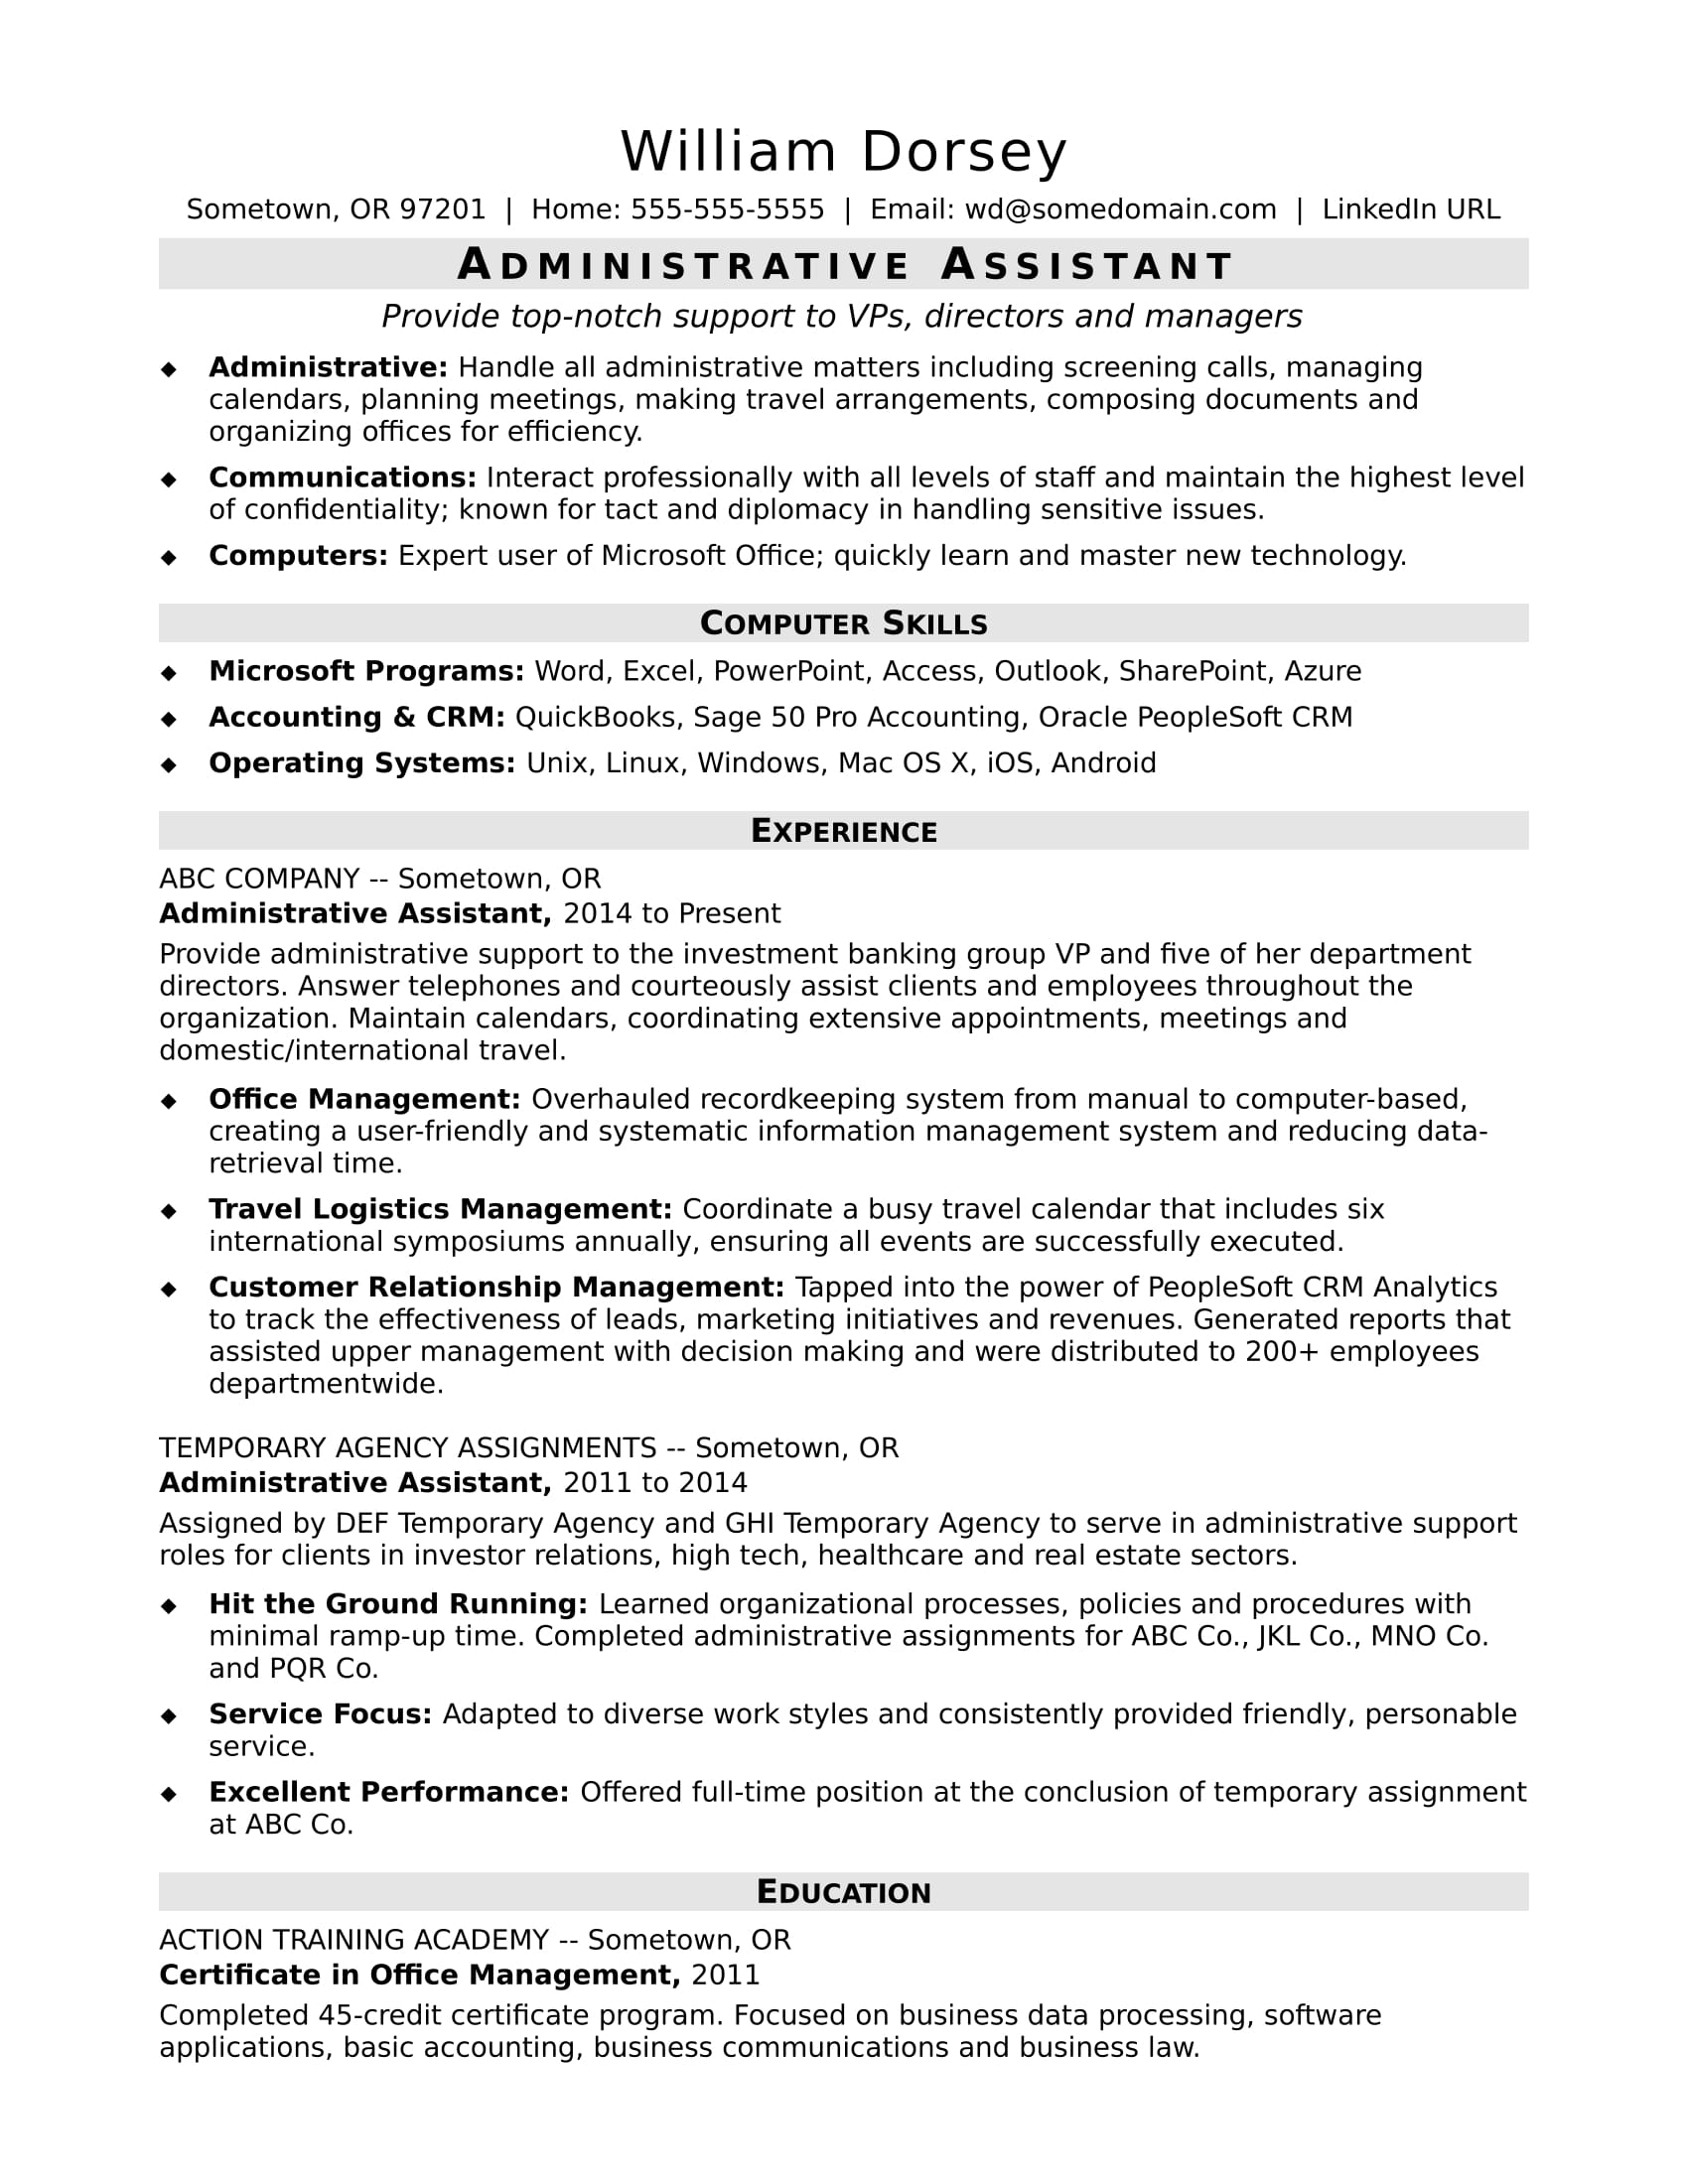 midlevel administrative assistant resume sample monster for executive secretary position Resume Sample Resume For Executive Secretary Position